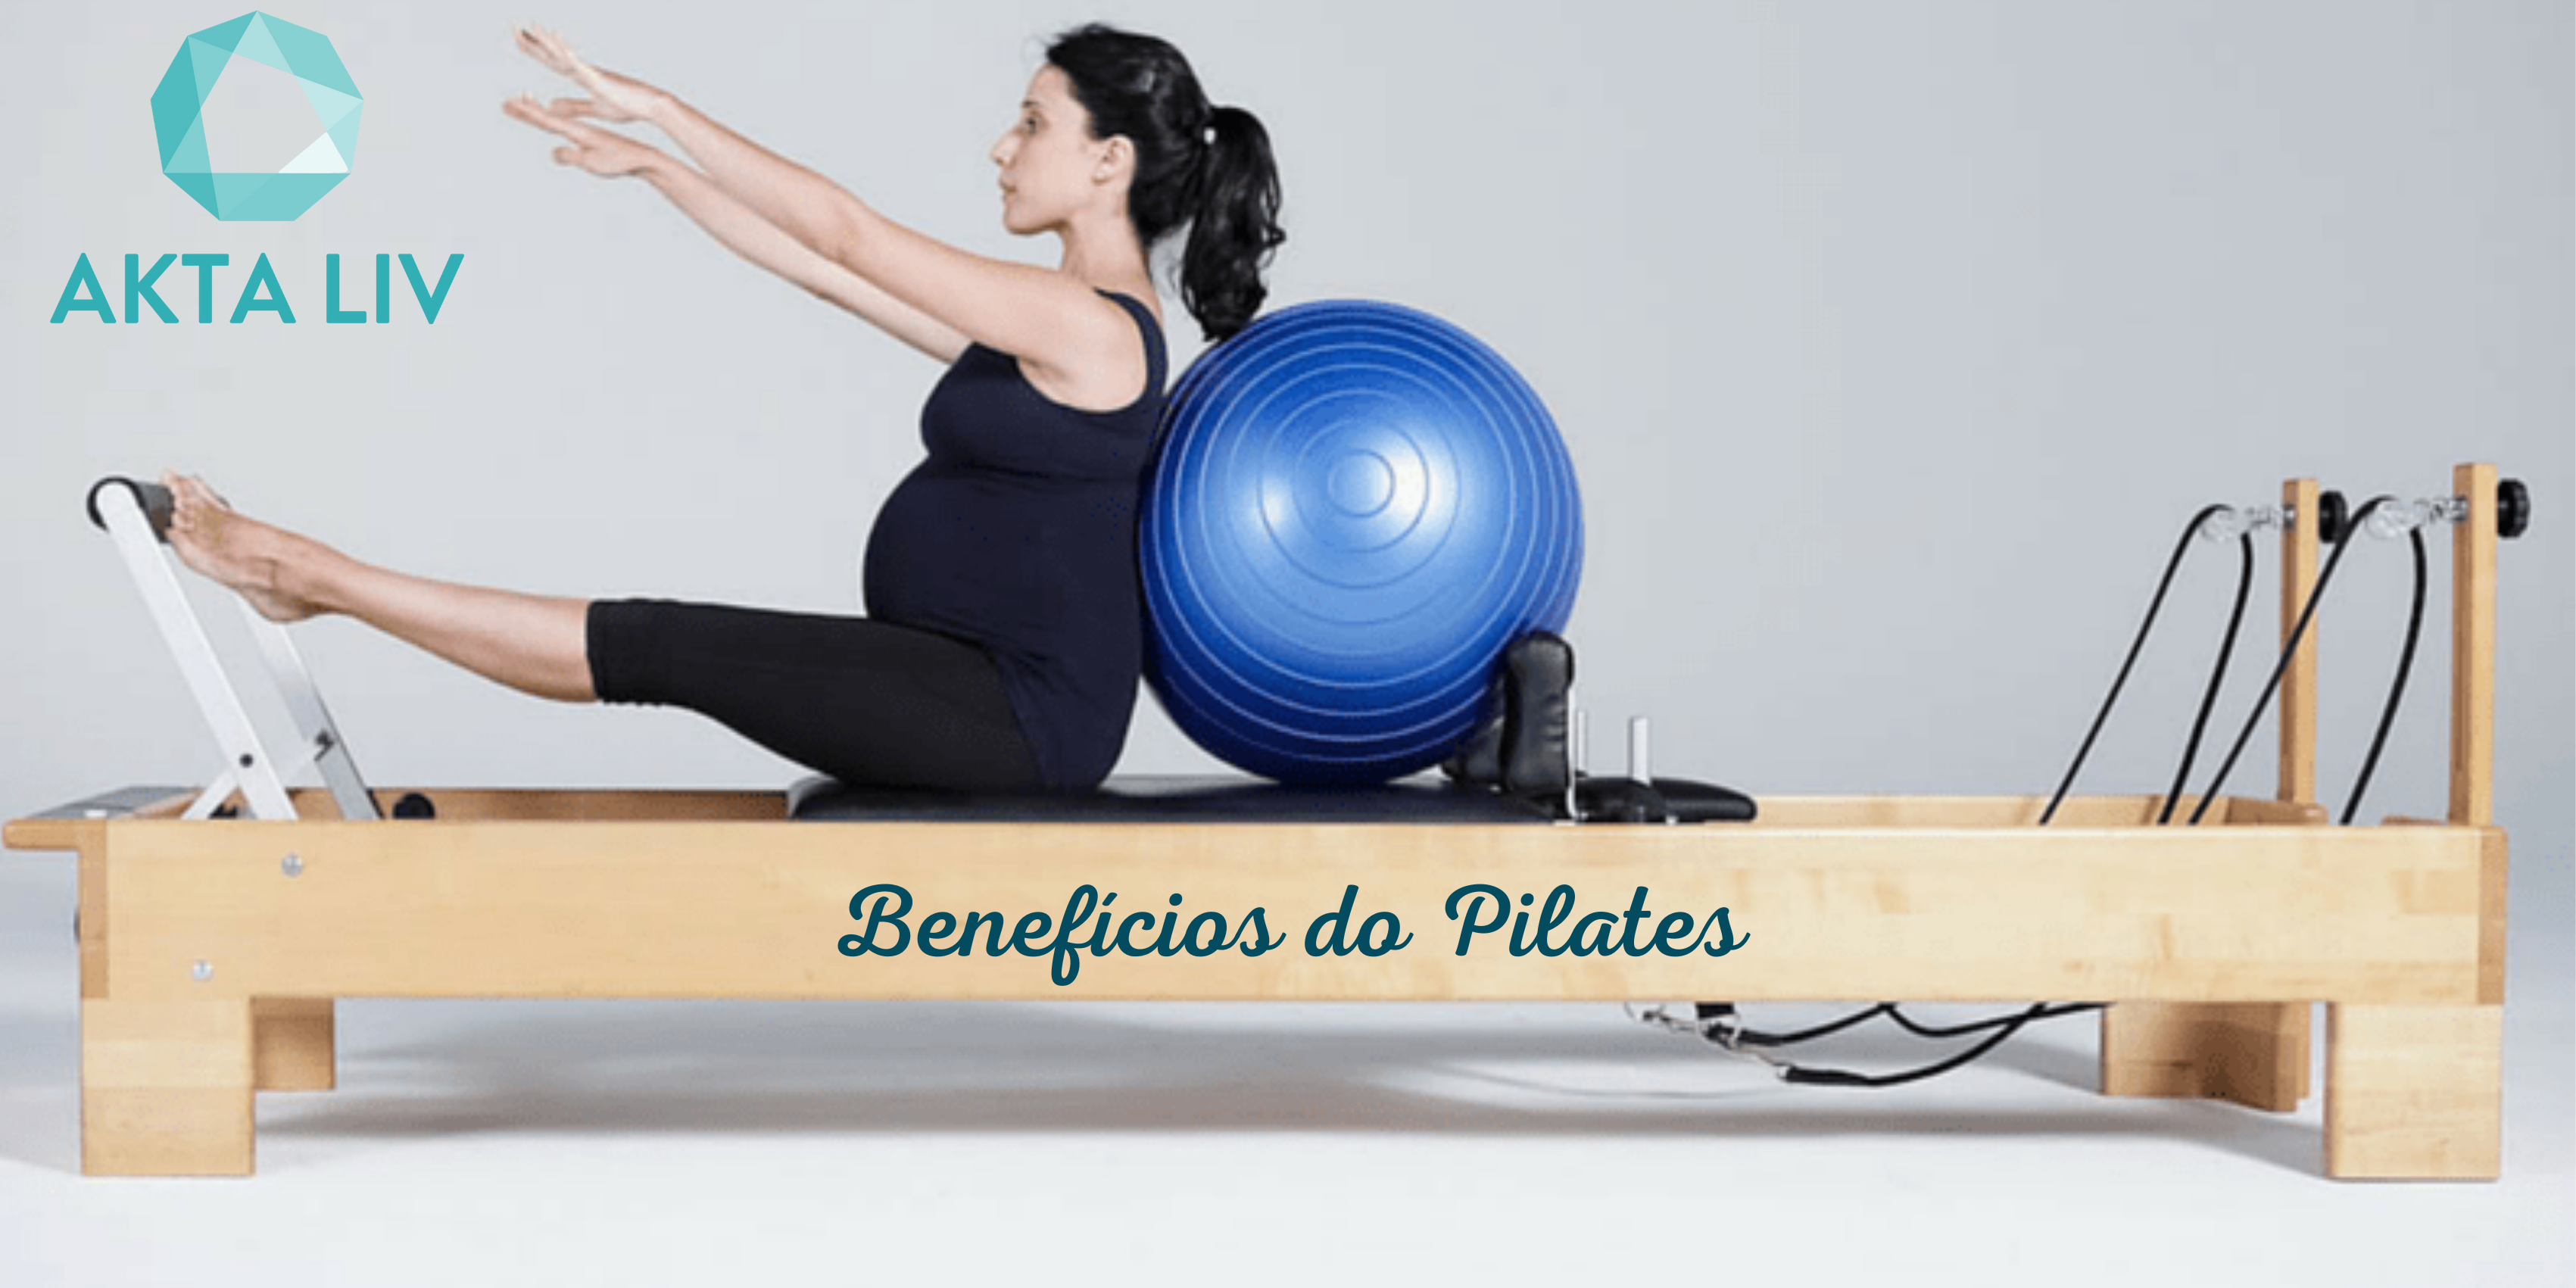 FISIOTERAPIA - AKTA LIV - PILATES - MUSCULOS DO CORE - PILATES PARA GESTANTES